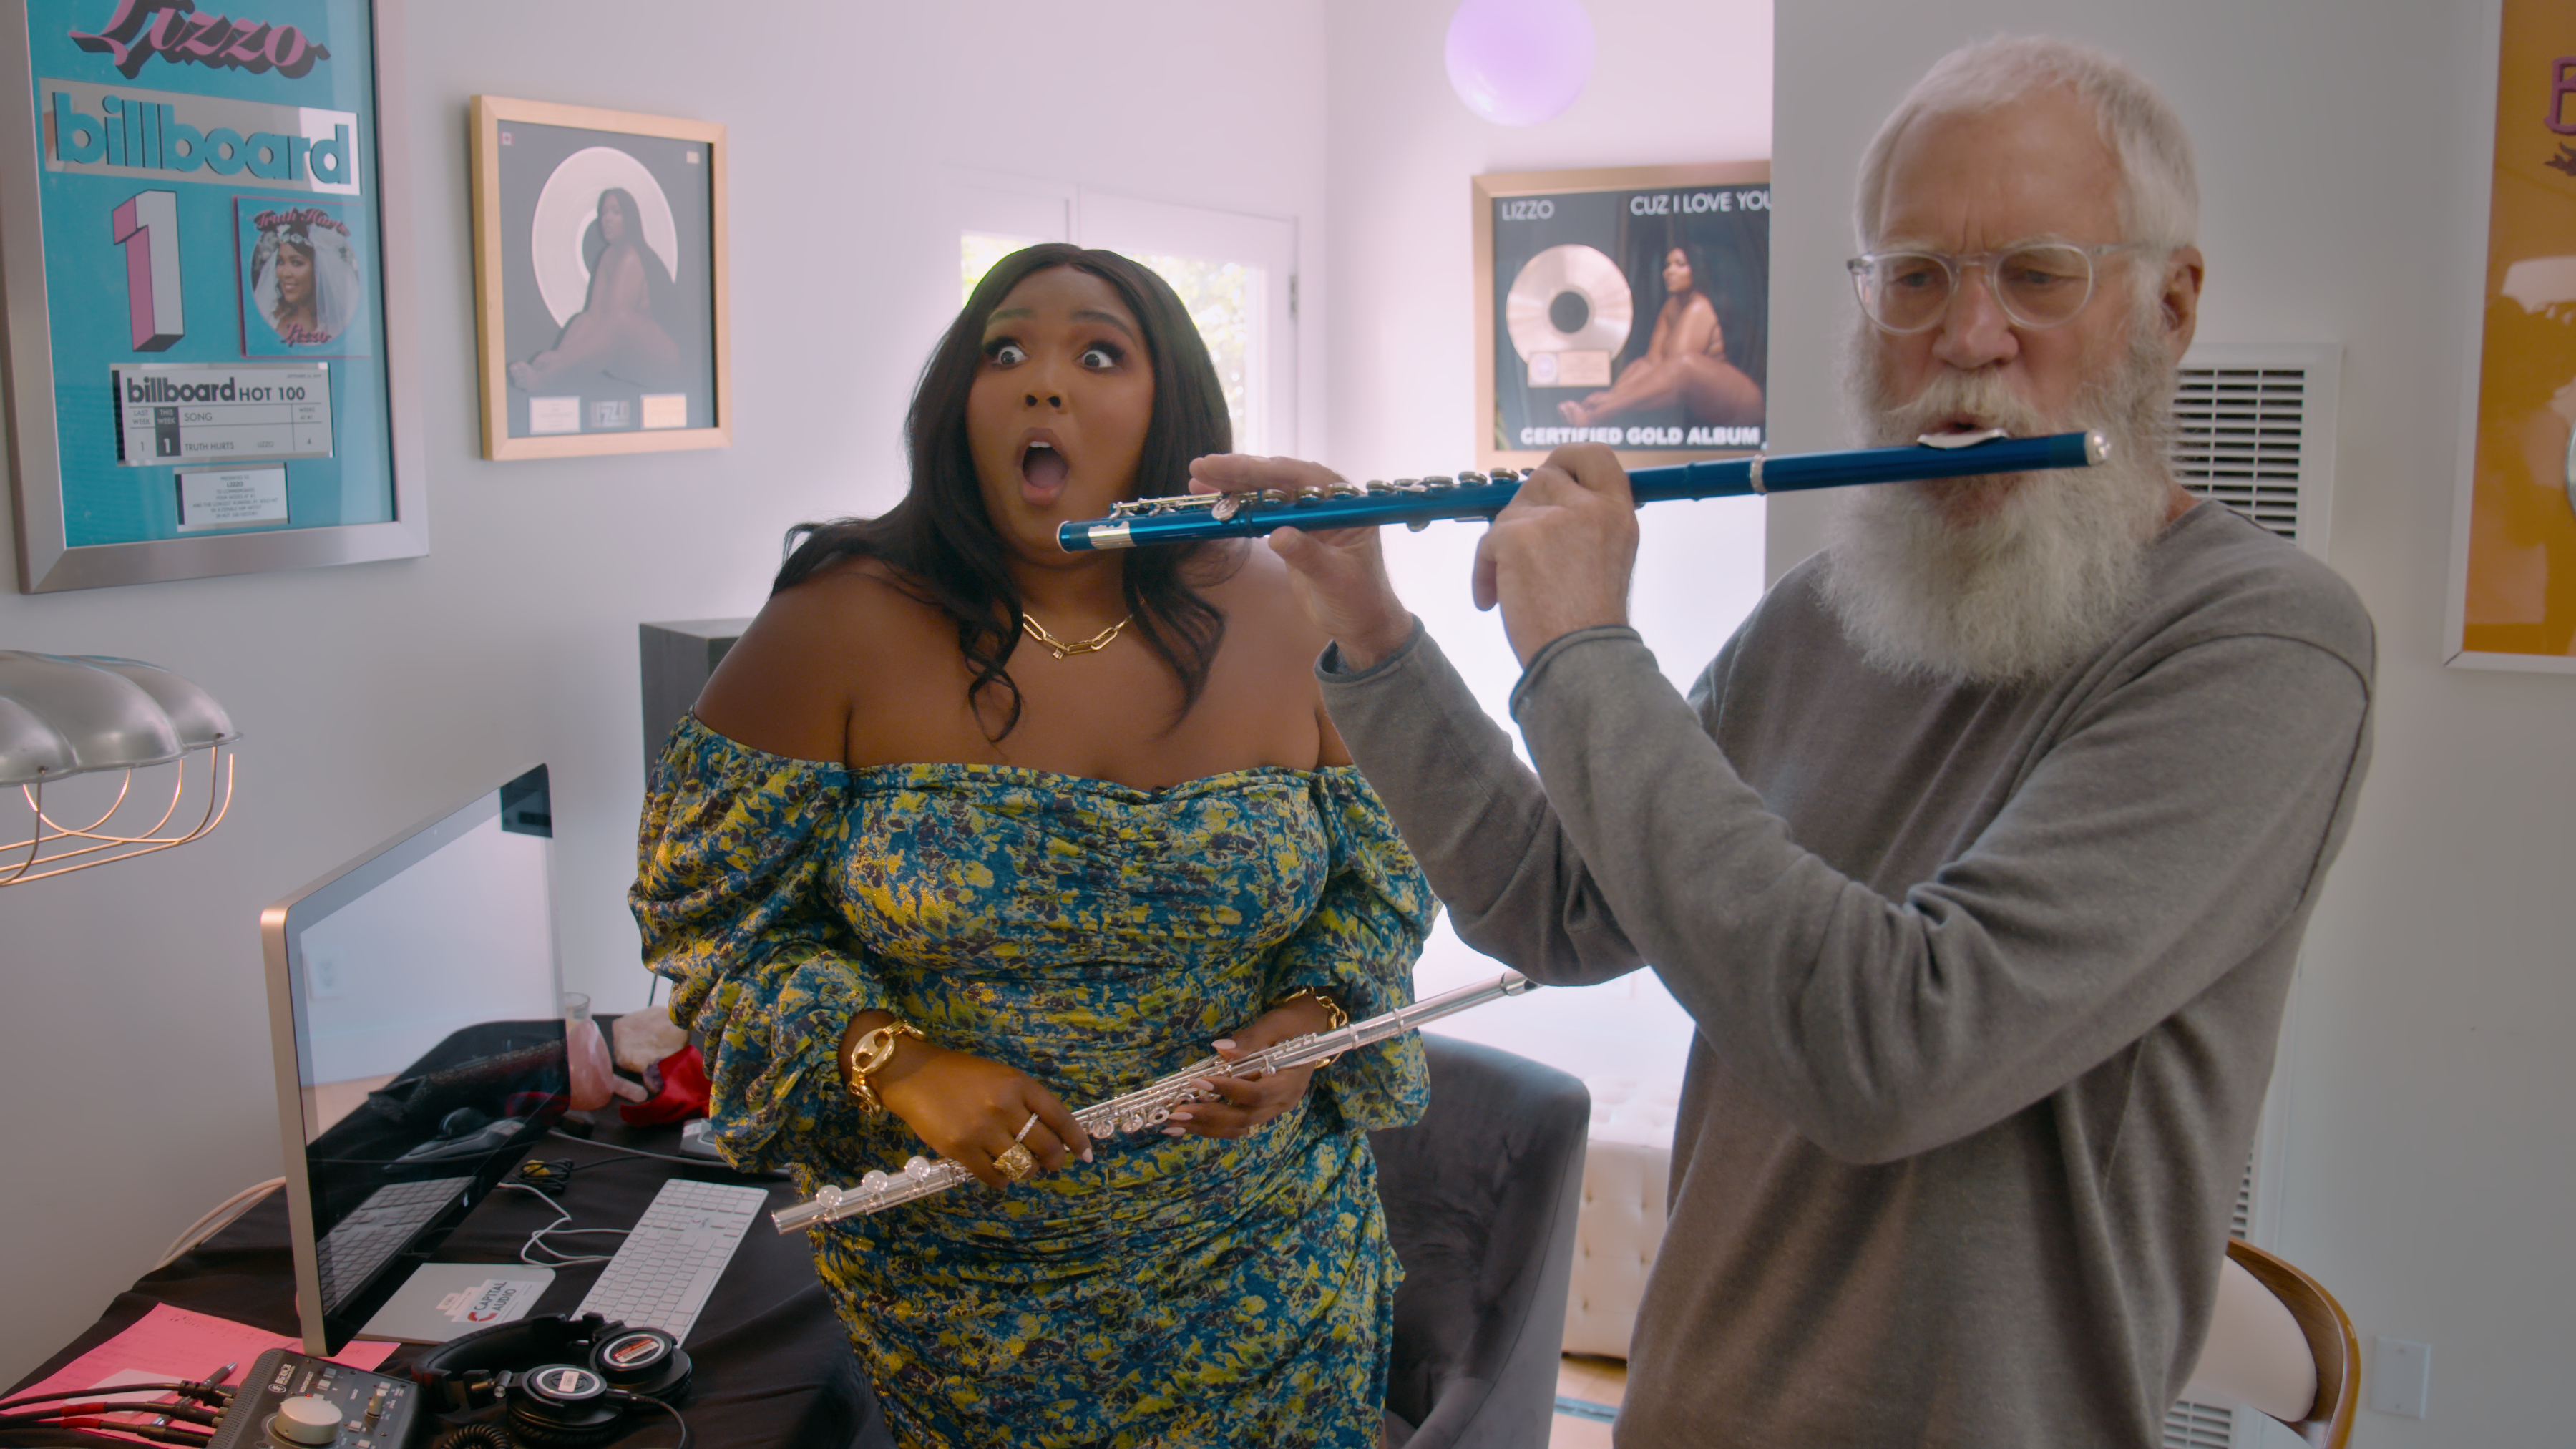 David Letterman is back with Kim K, RDJ, Chappelle and Lizzo for Season 3 |  WhatToWatch